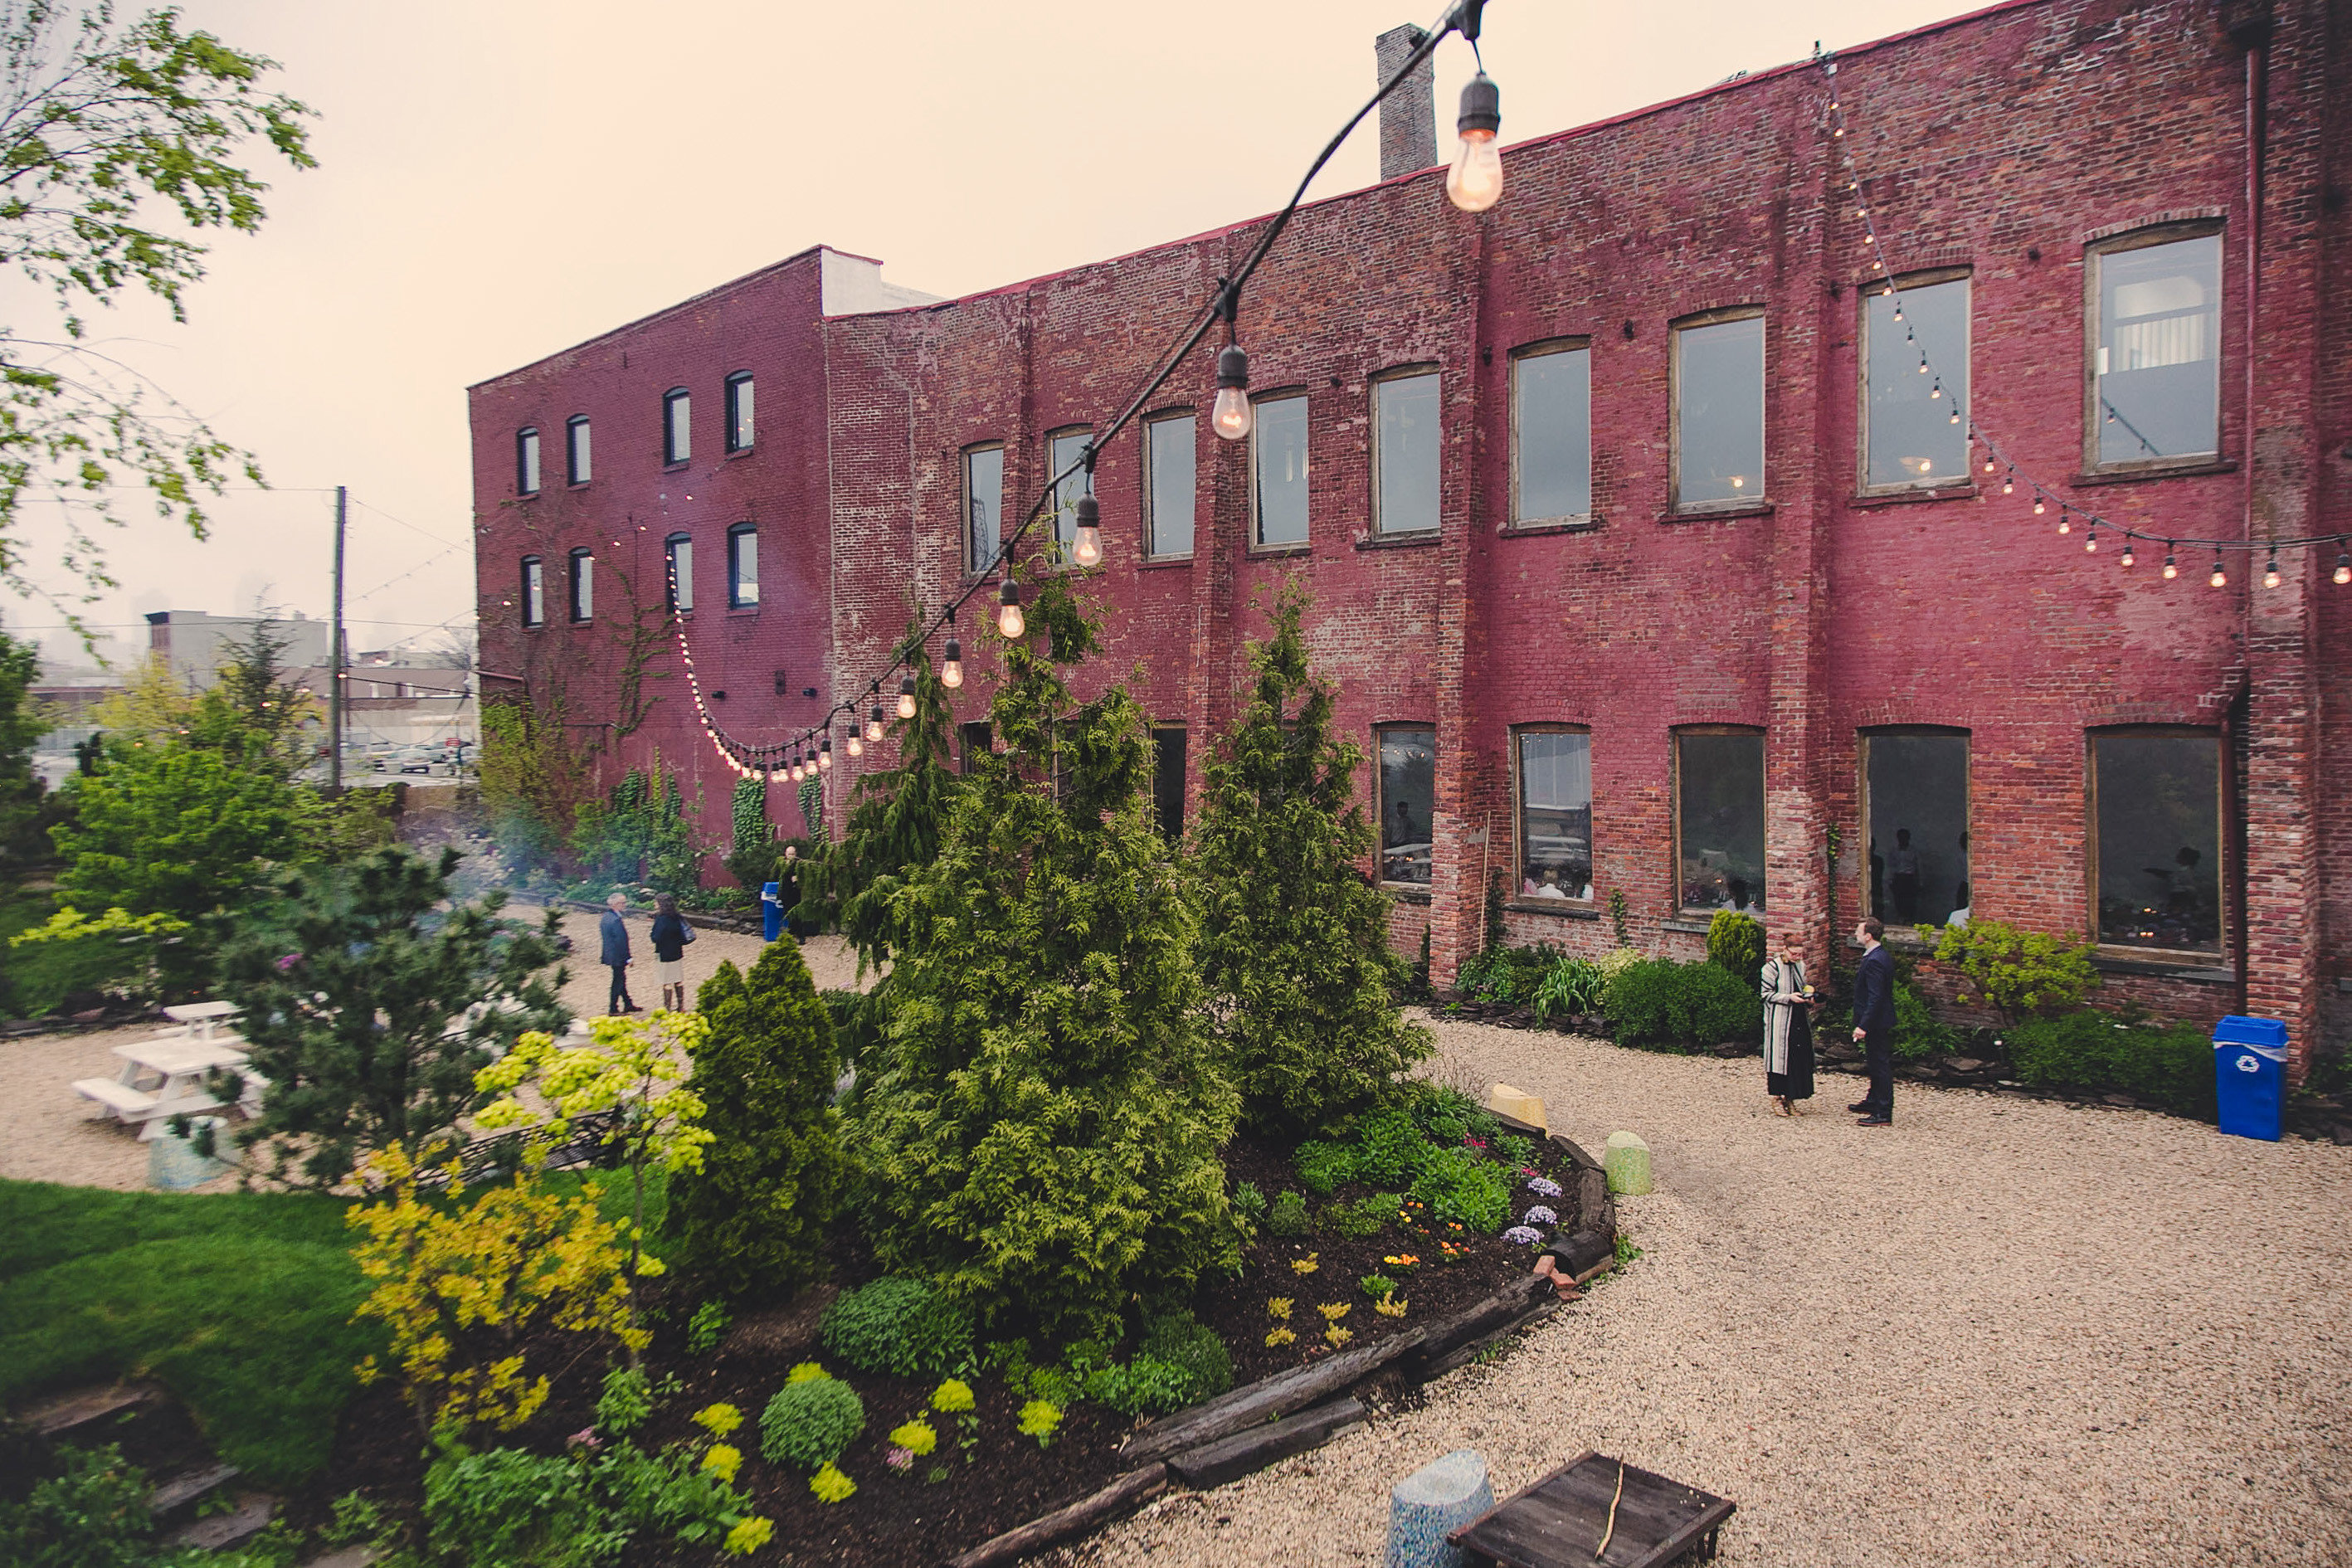 Arts + Culture Attractions Food + Drink Style + Design Travel Shop Trip Ideas tree outdoor neighbourhood building property Town house urban area Architecture plant home City residential area real estate campus estate Courtyard brick facade grass window apartment recreation Garden stone